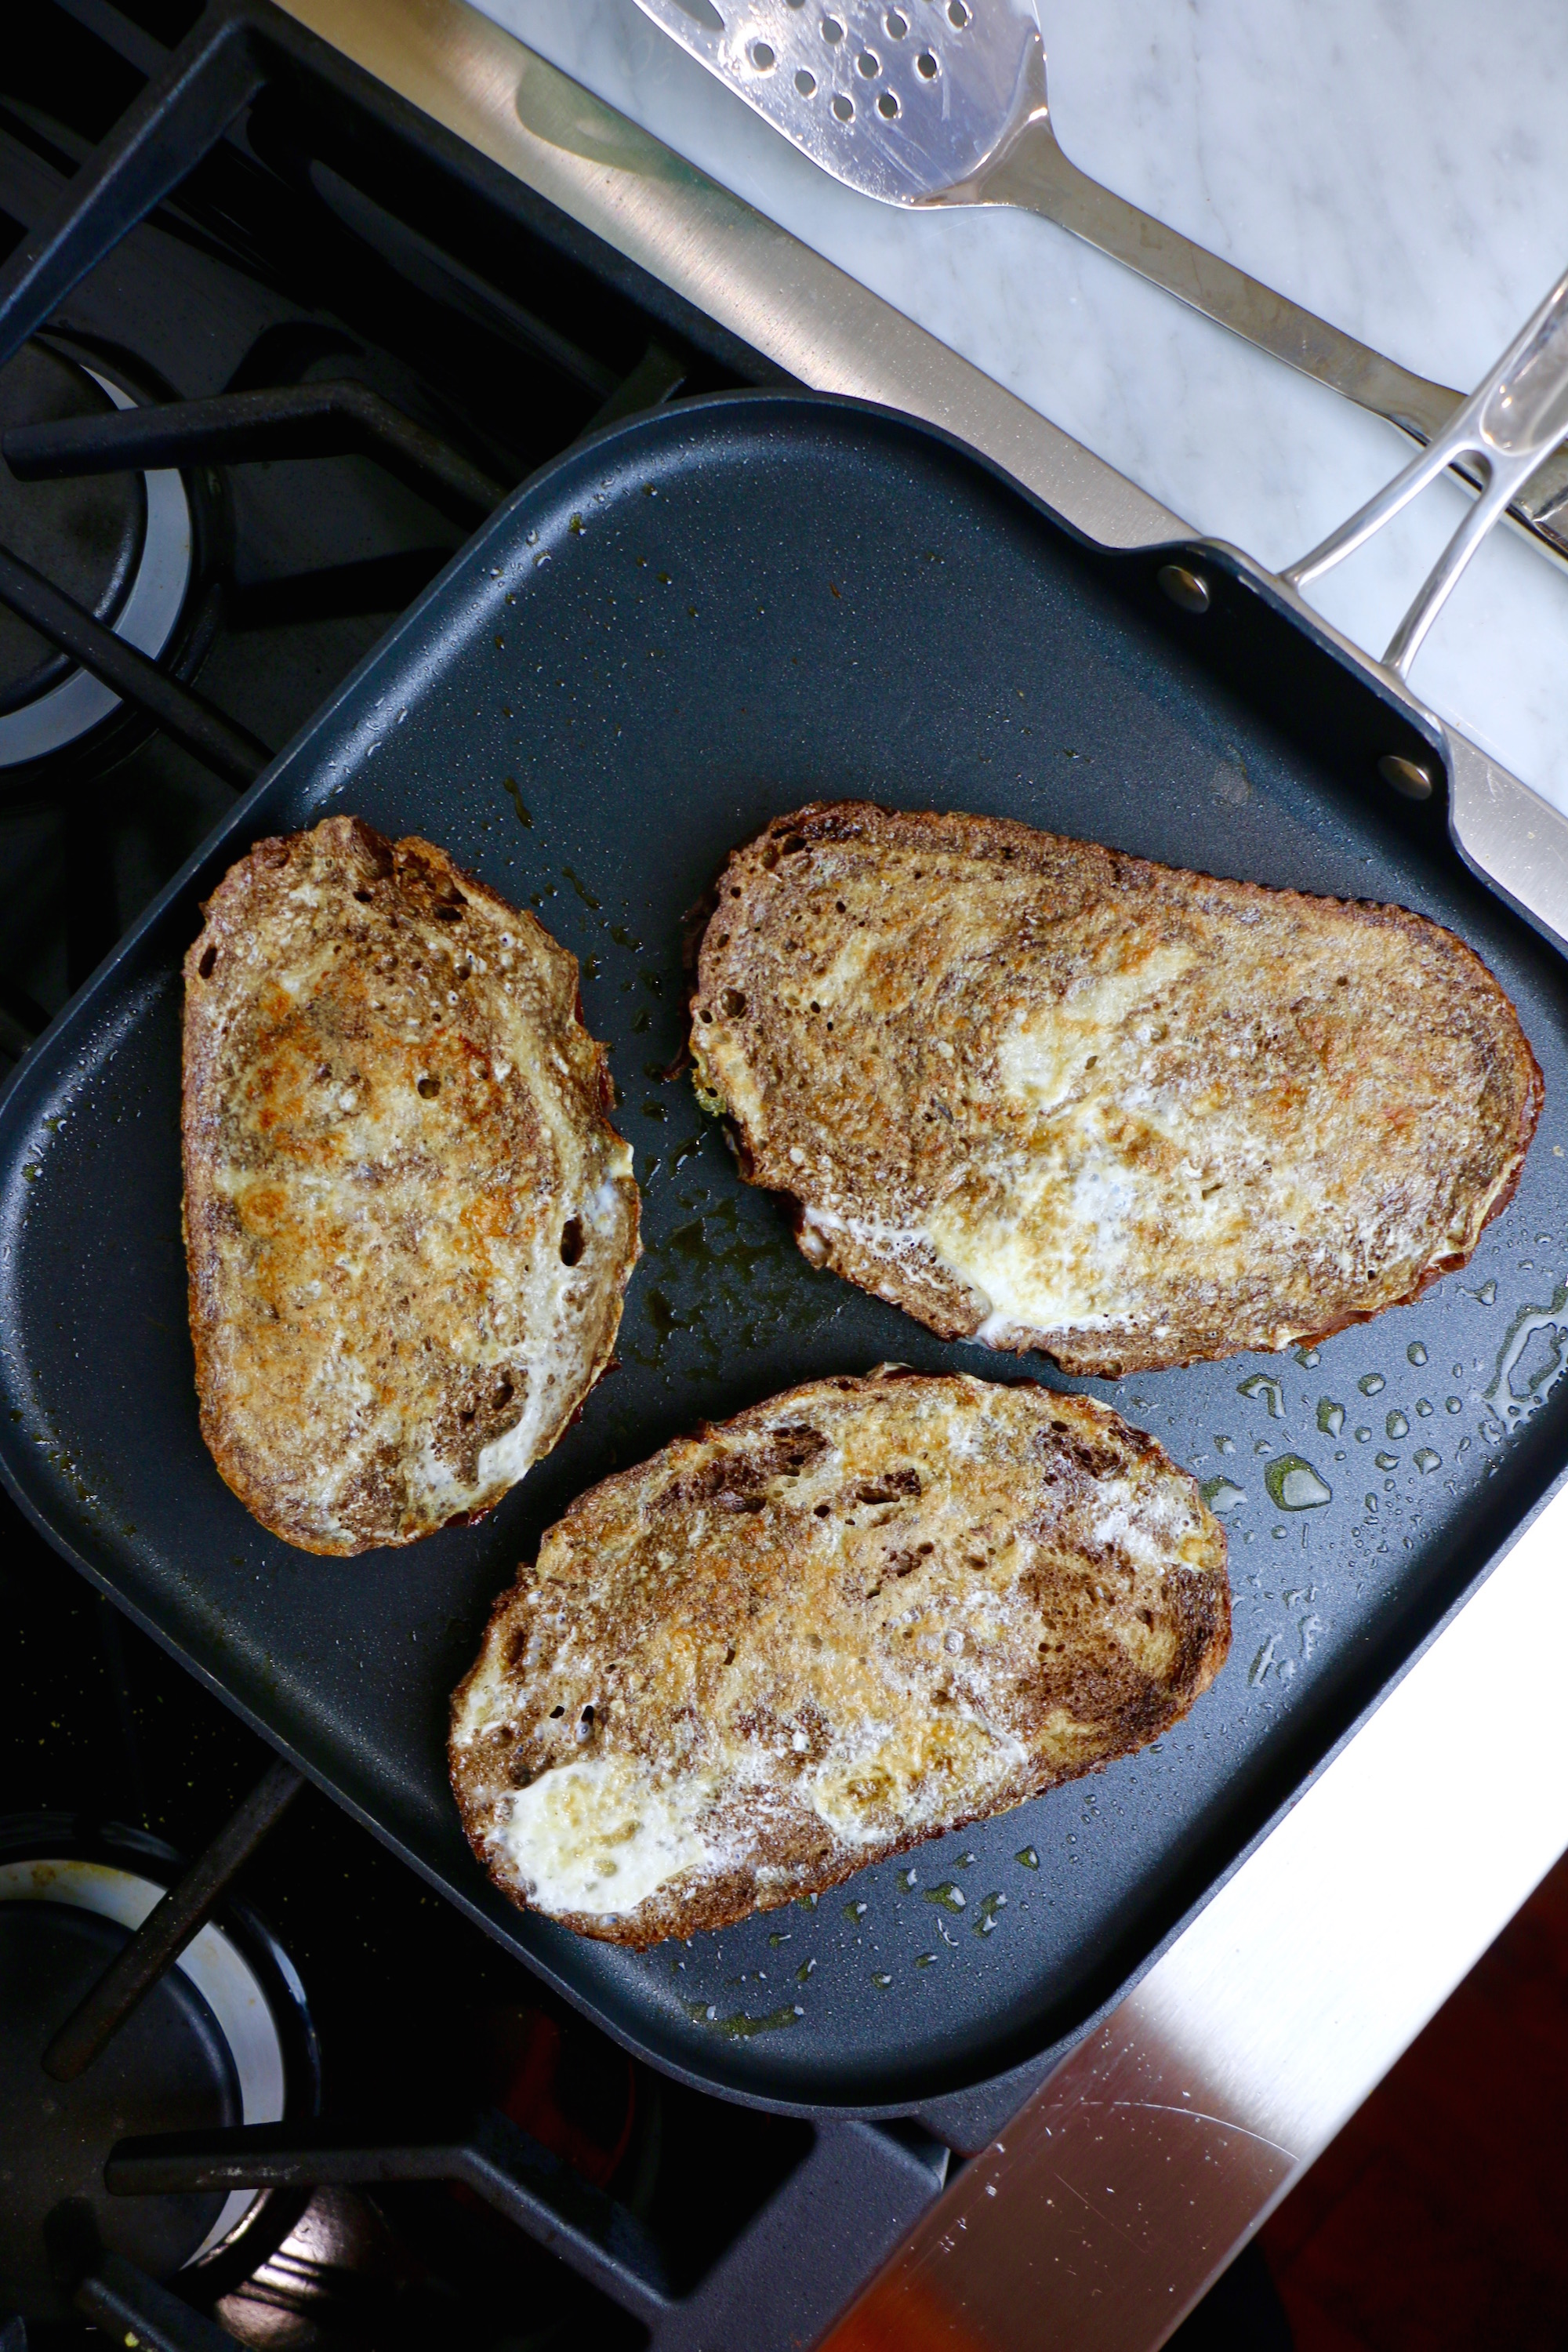 Savory French Toast made with Rye Bread